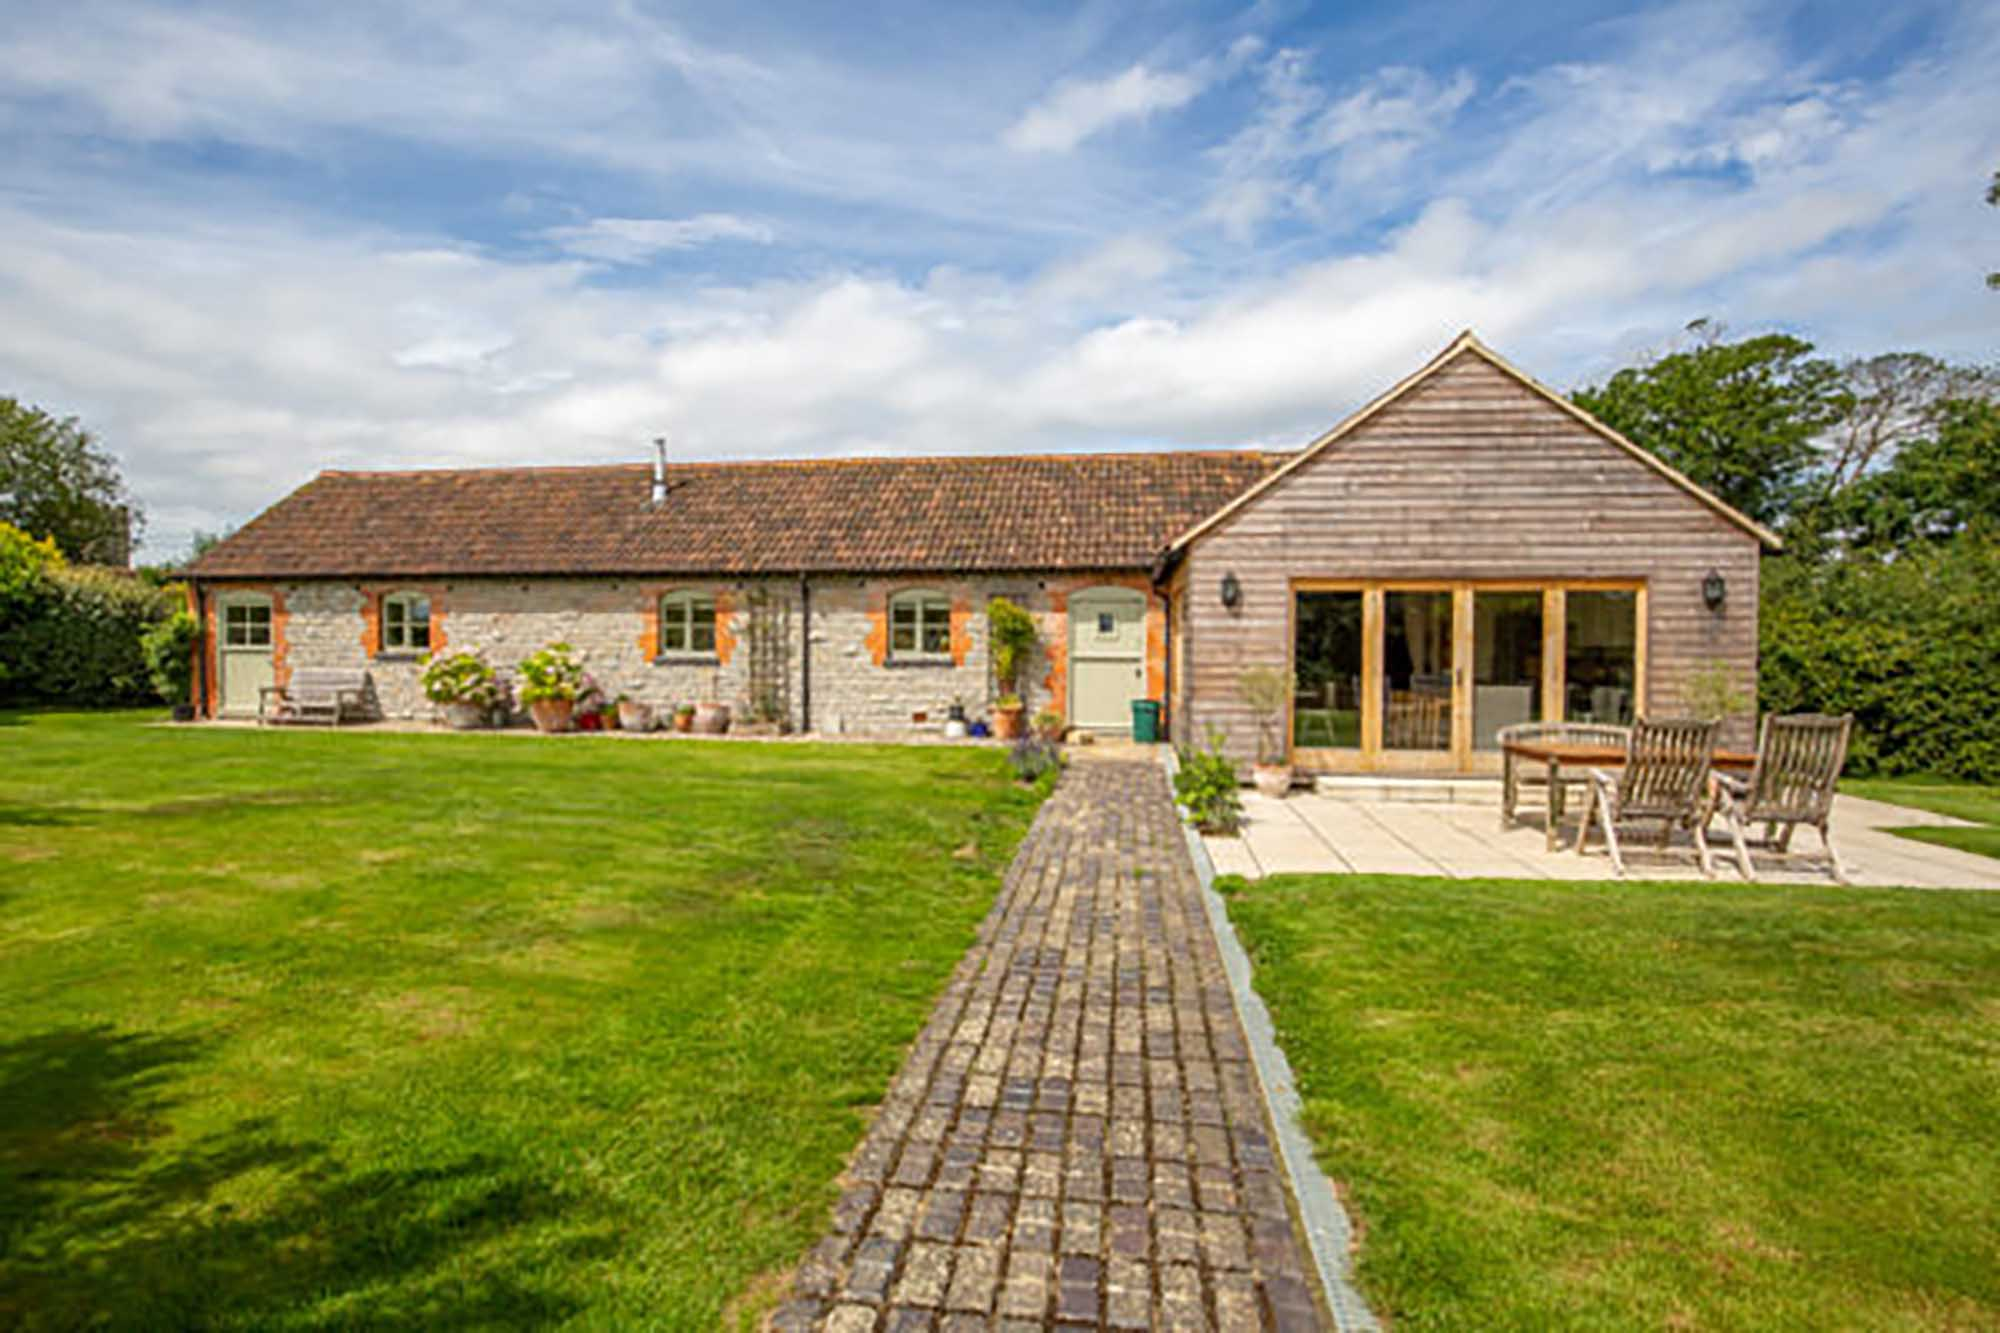 Wonderful Barn conversion with annex